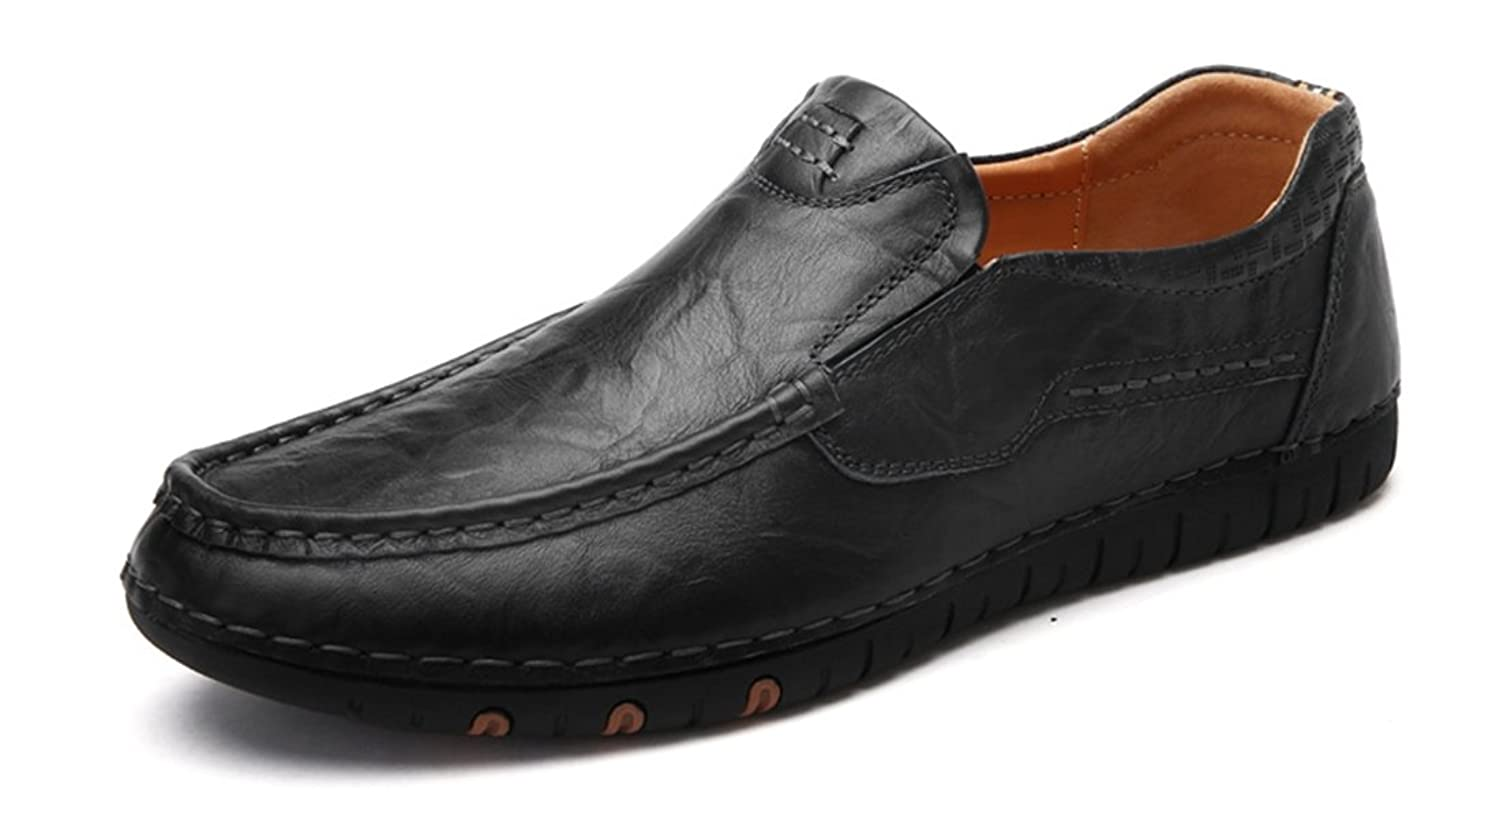 Men's Slip-On Stitching Low-Top Leather Casual Driving Walking Loafers Boat Shoes